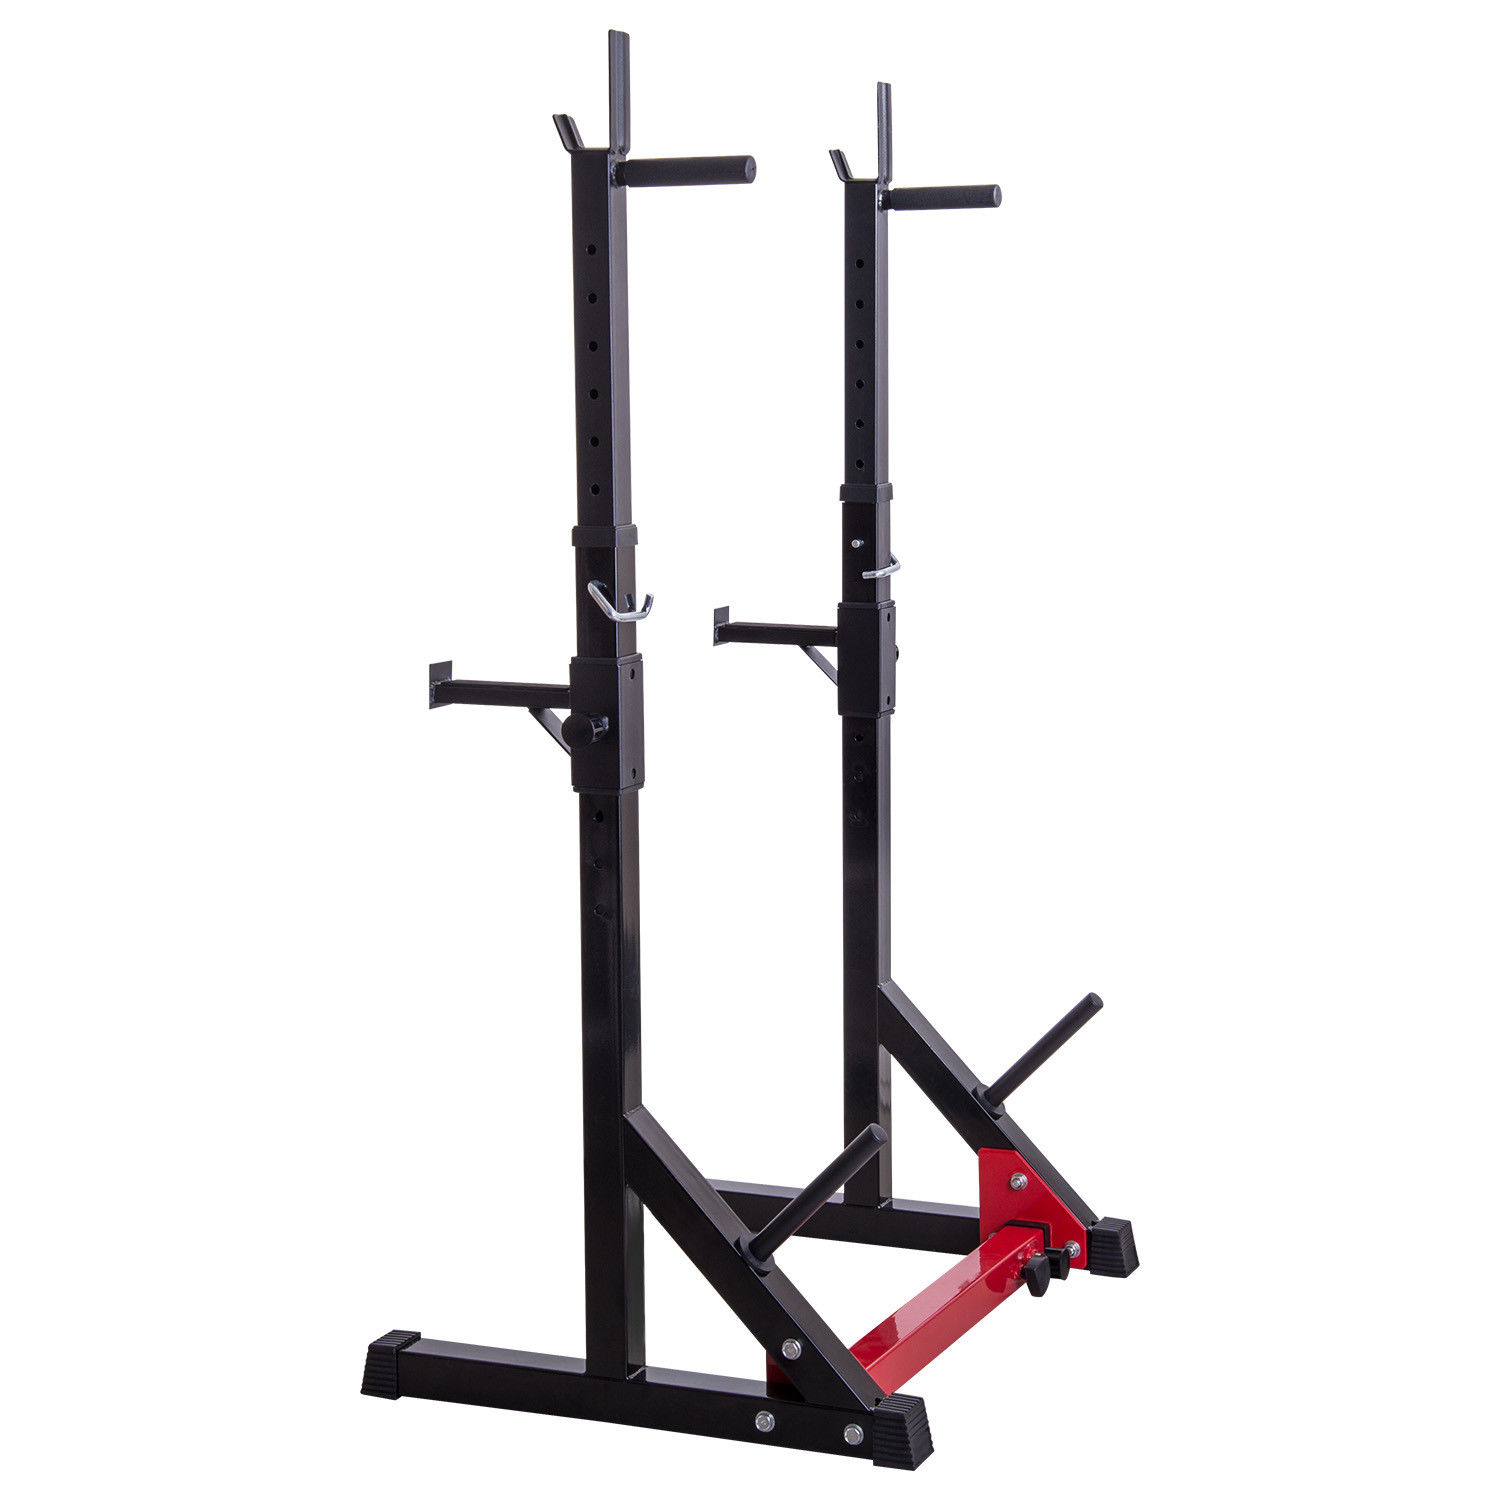 2pcs Adjustable Dip Stand Squat Rack Gym Fitness Barbell ...